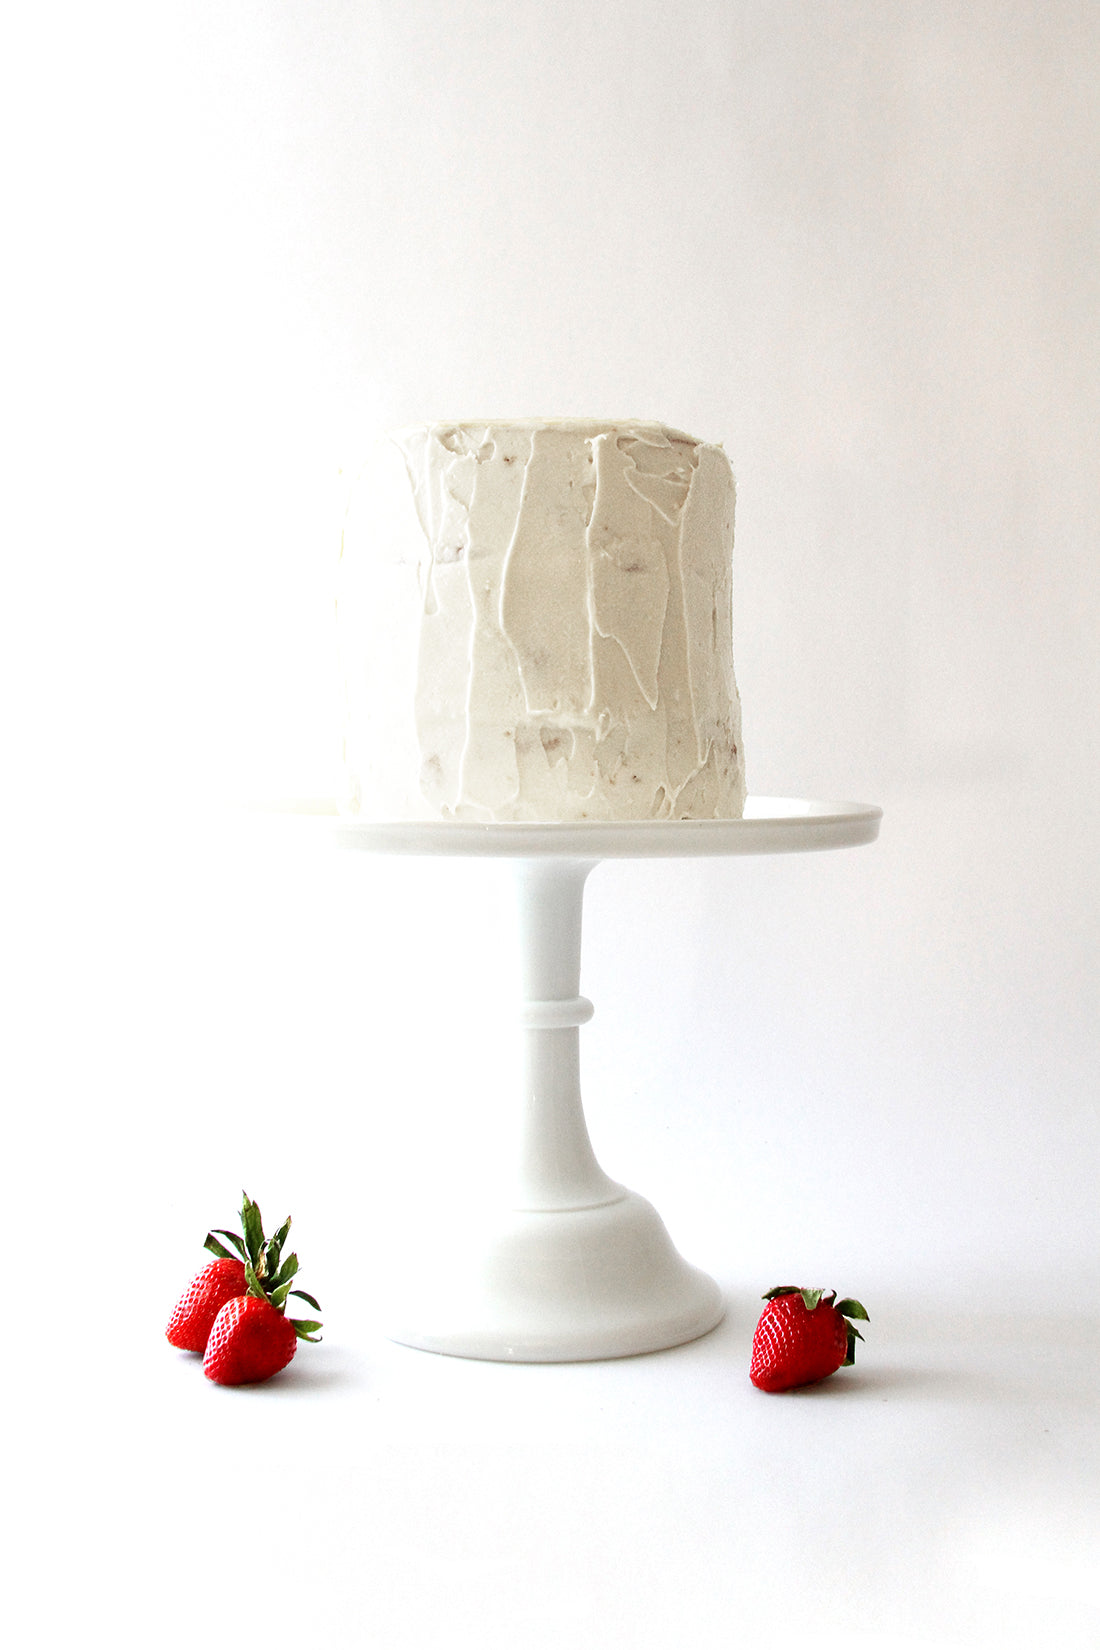 Image of cake stand with Miss Jones California Strawberry Cake on top and three strawberries surrounding the base of the stand.